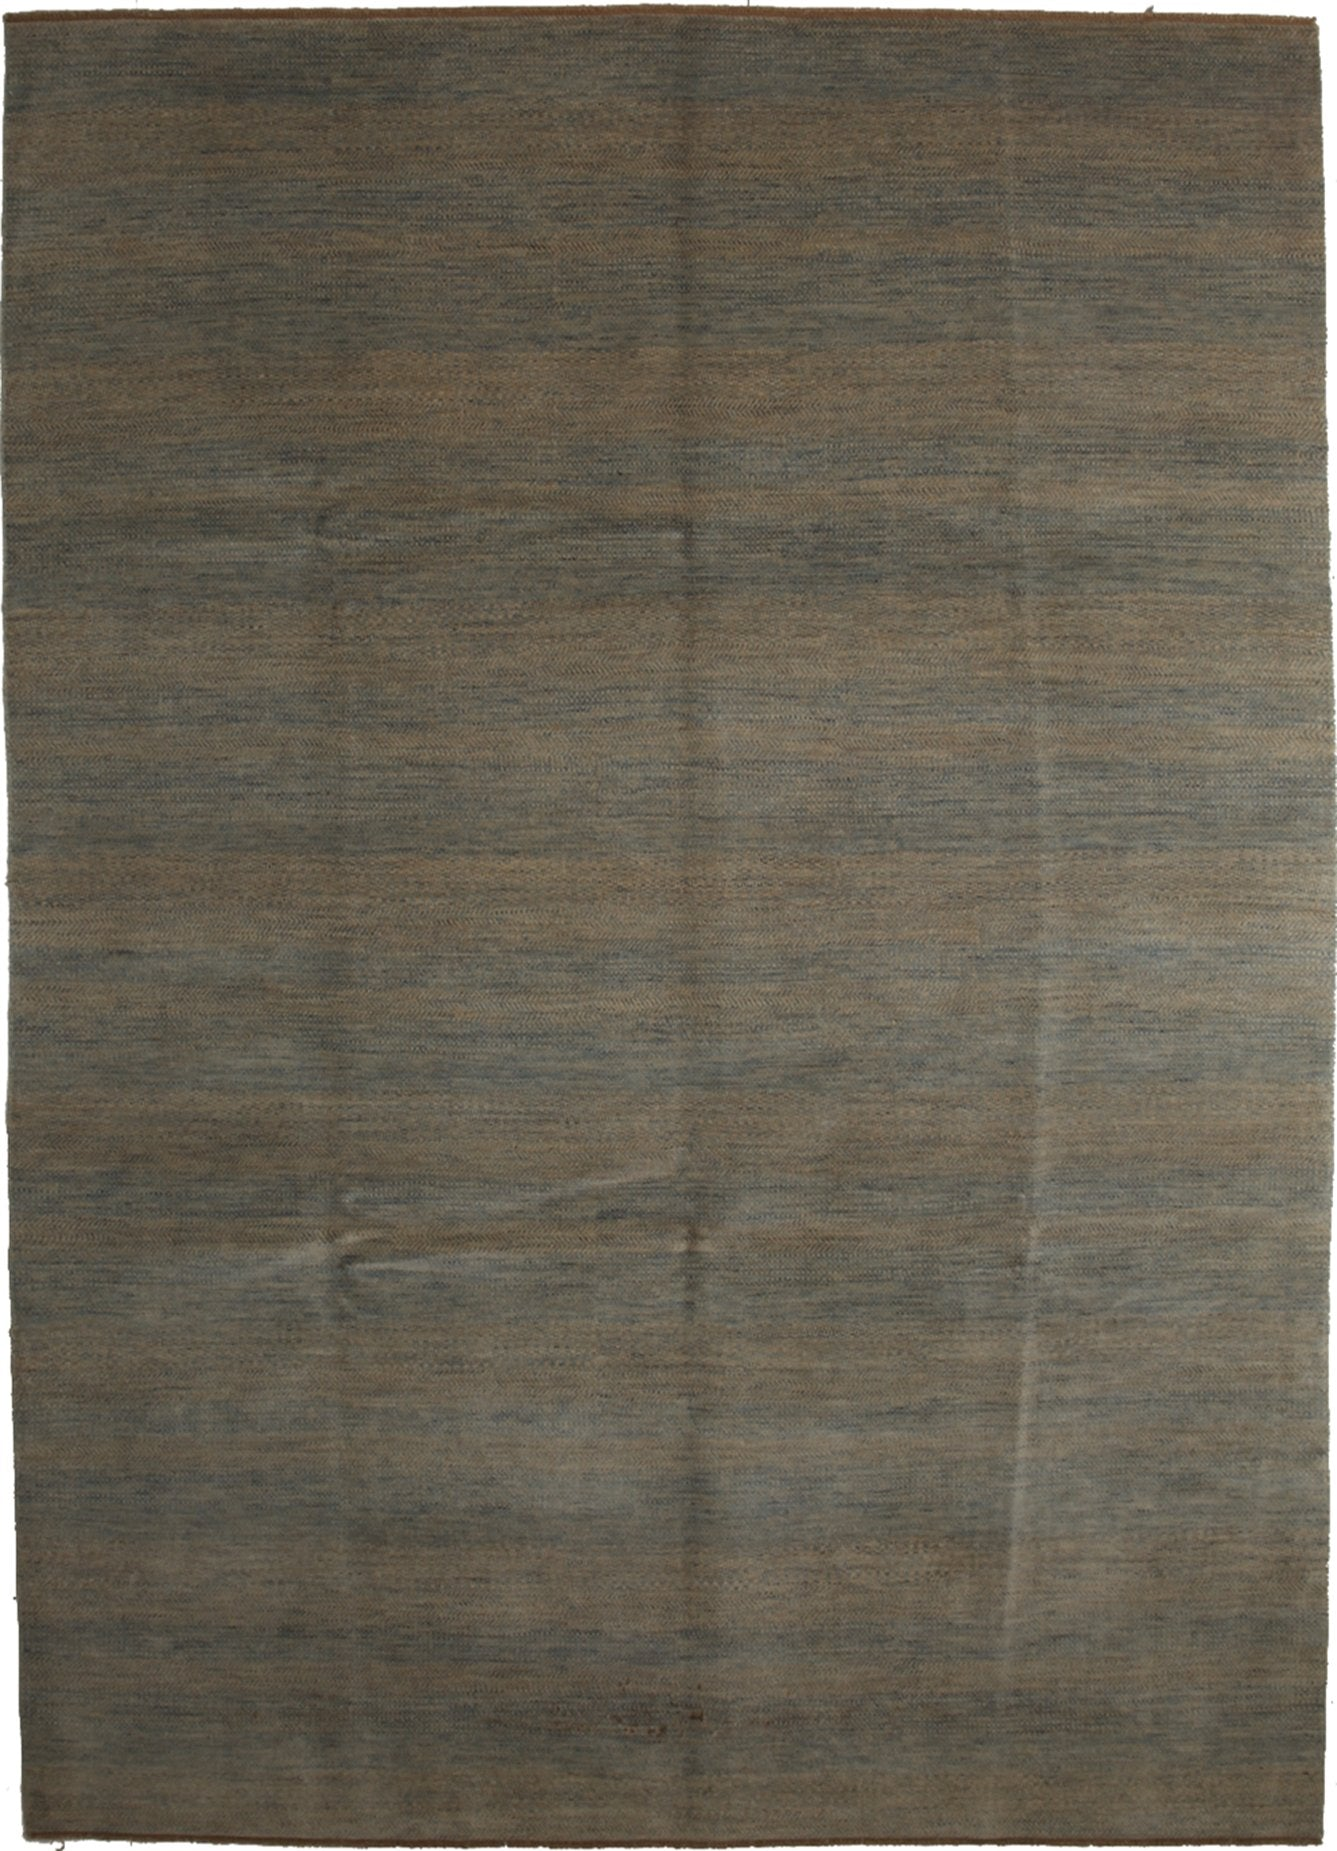 Monochrome Beige Wool Area Rug 8 9 X 12 1 Lillian August